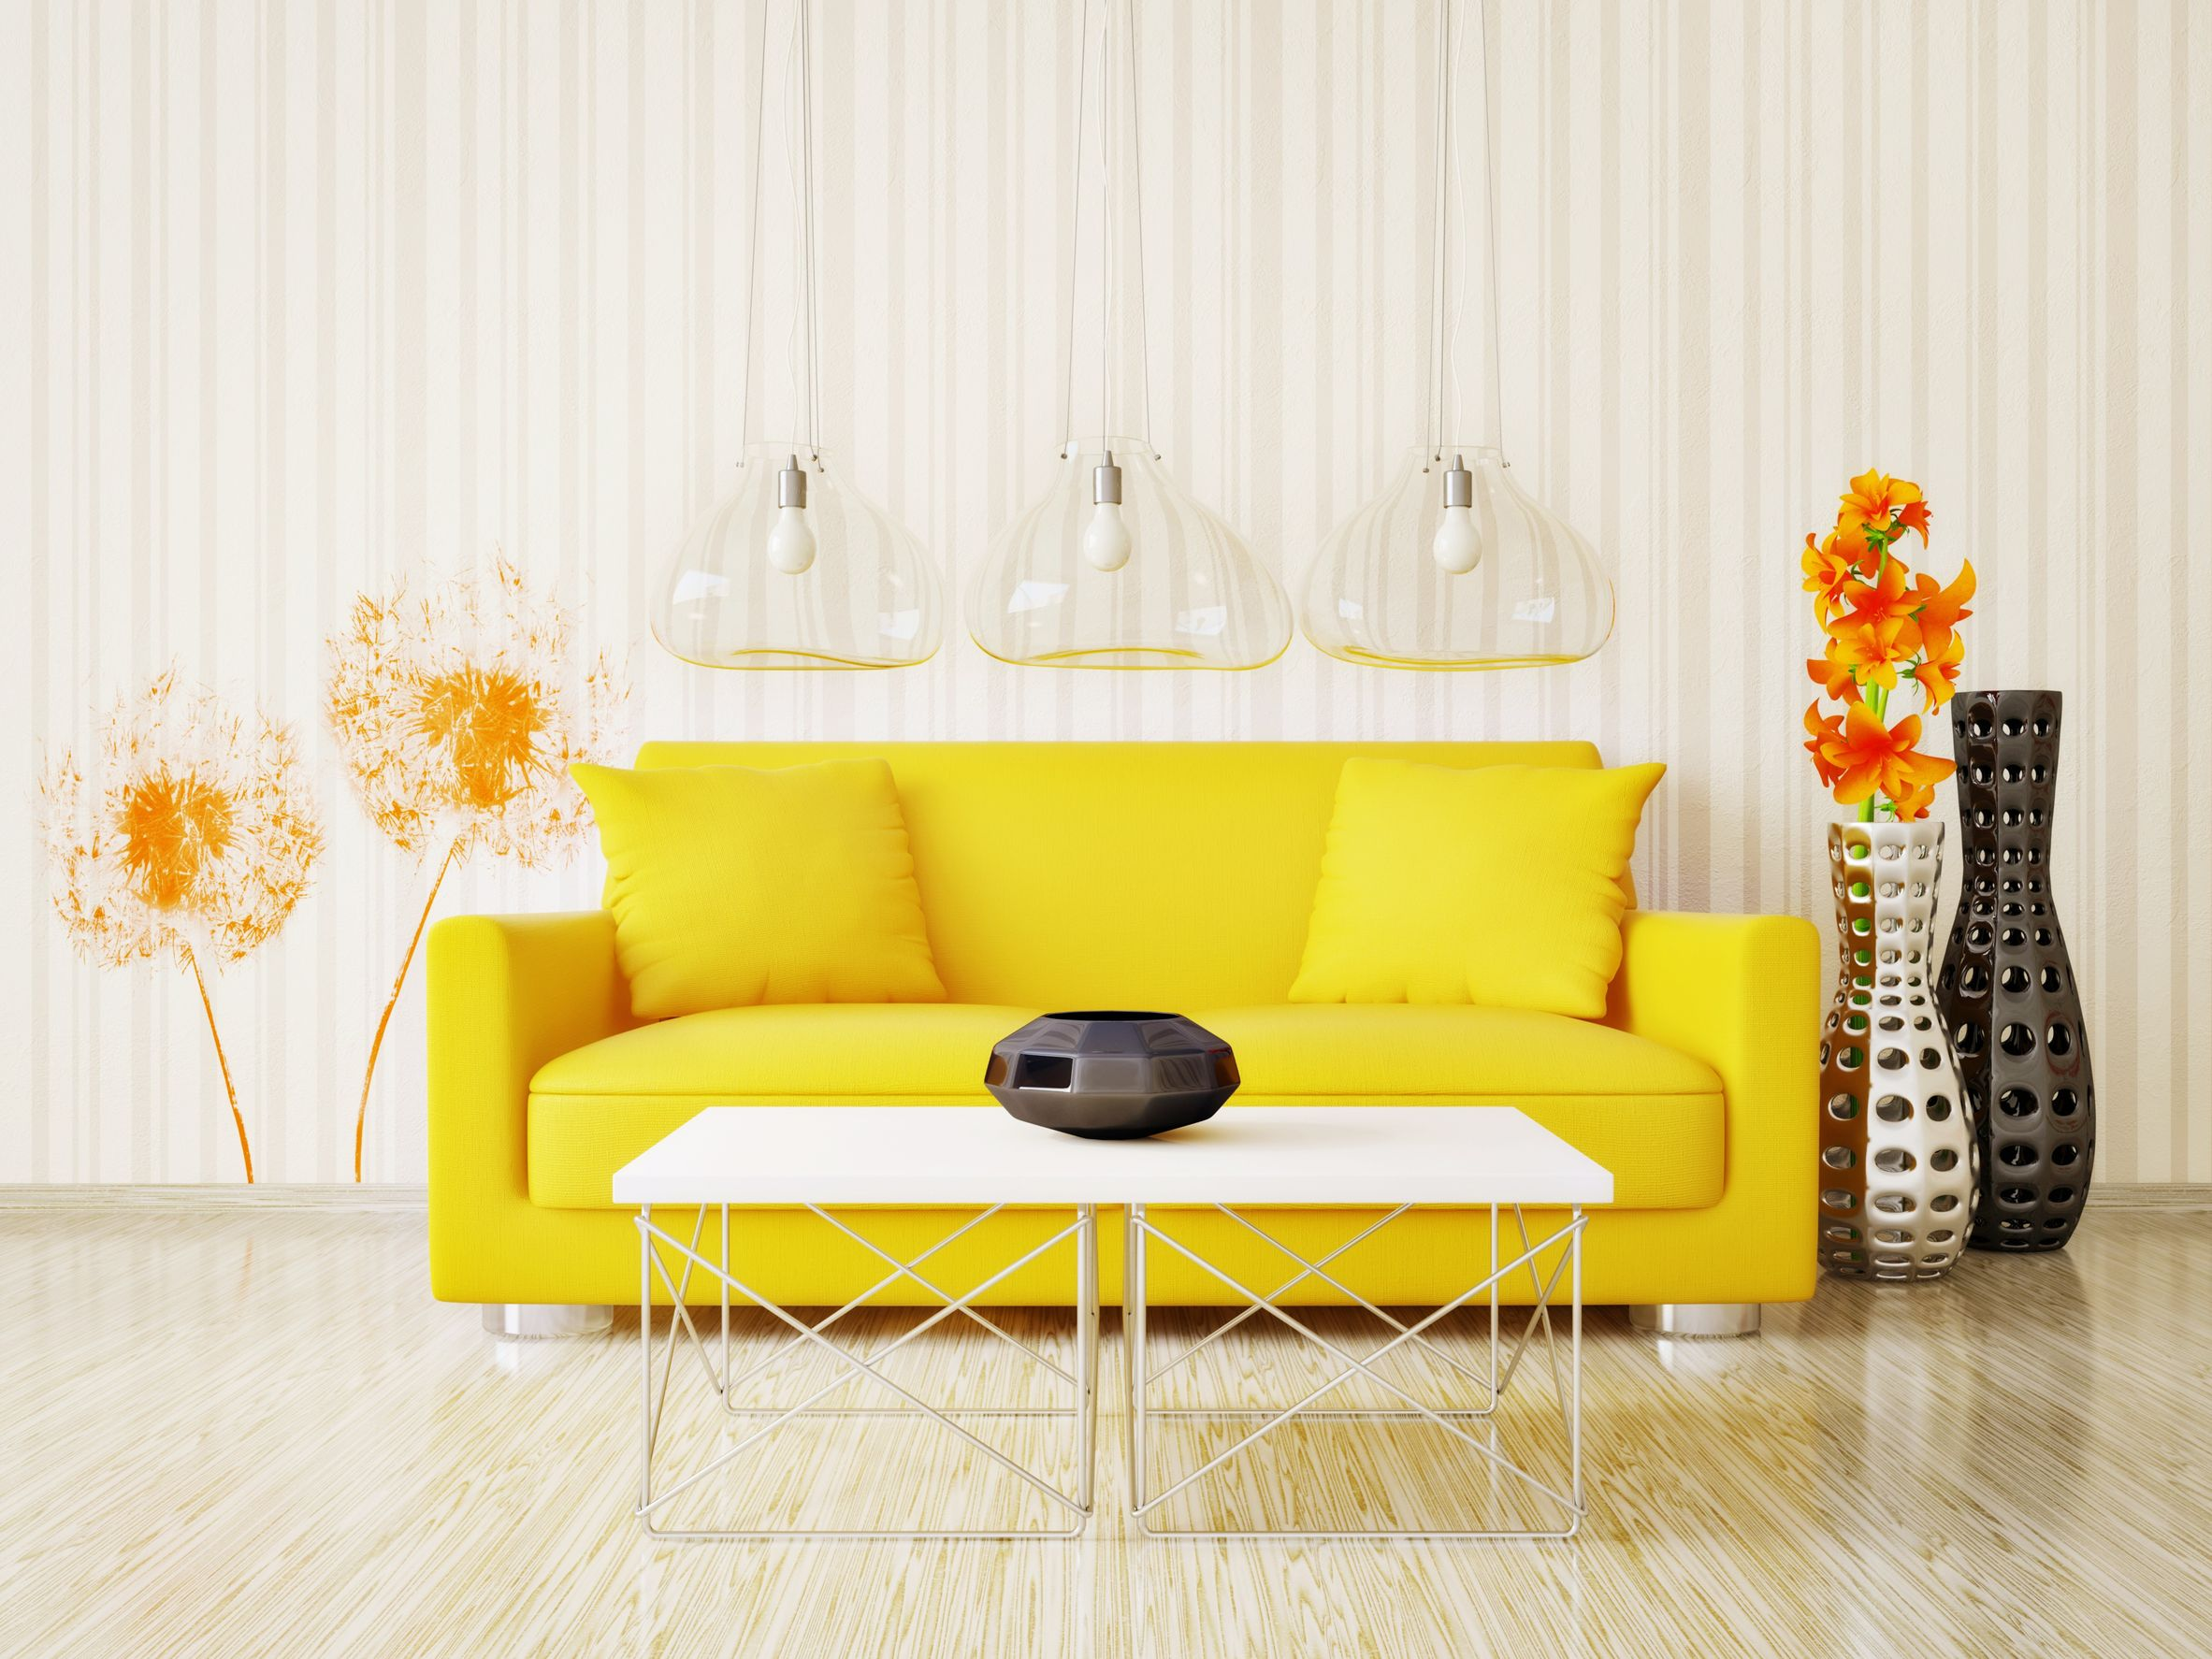 Best Home Decor Shopping in The Woodlands